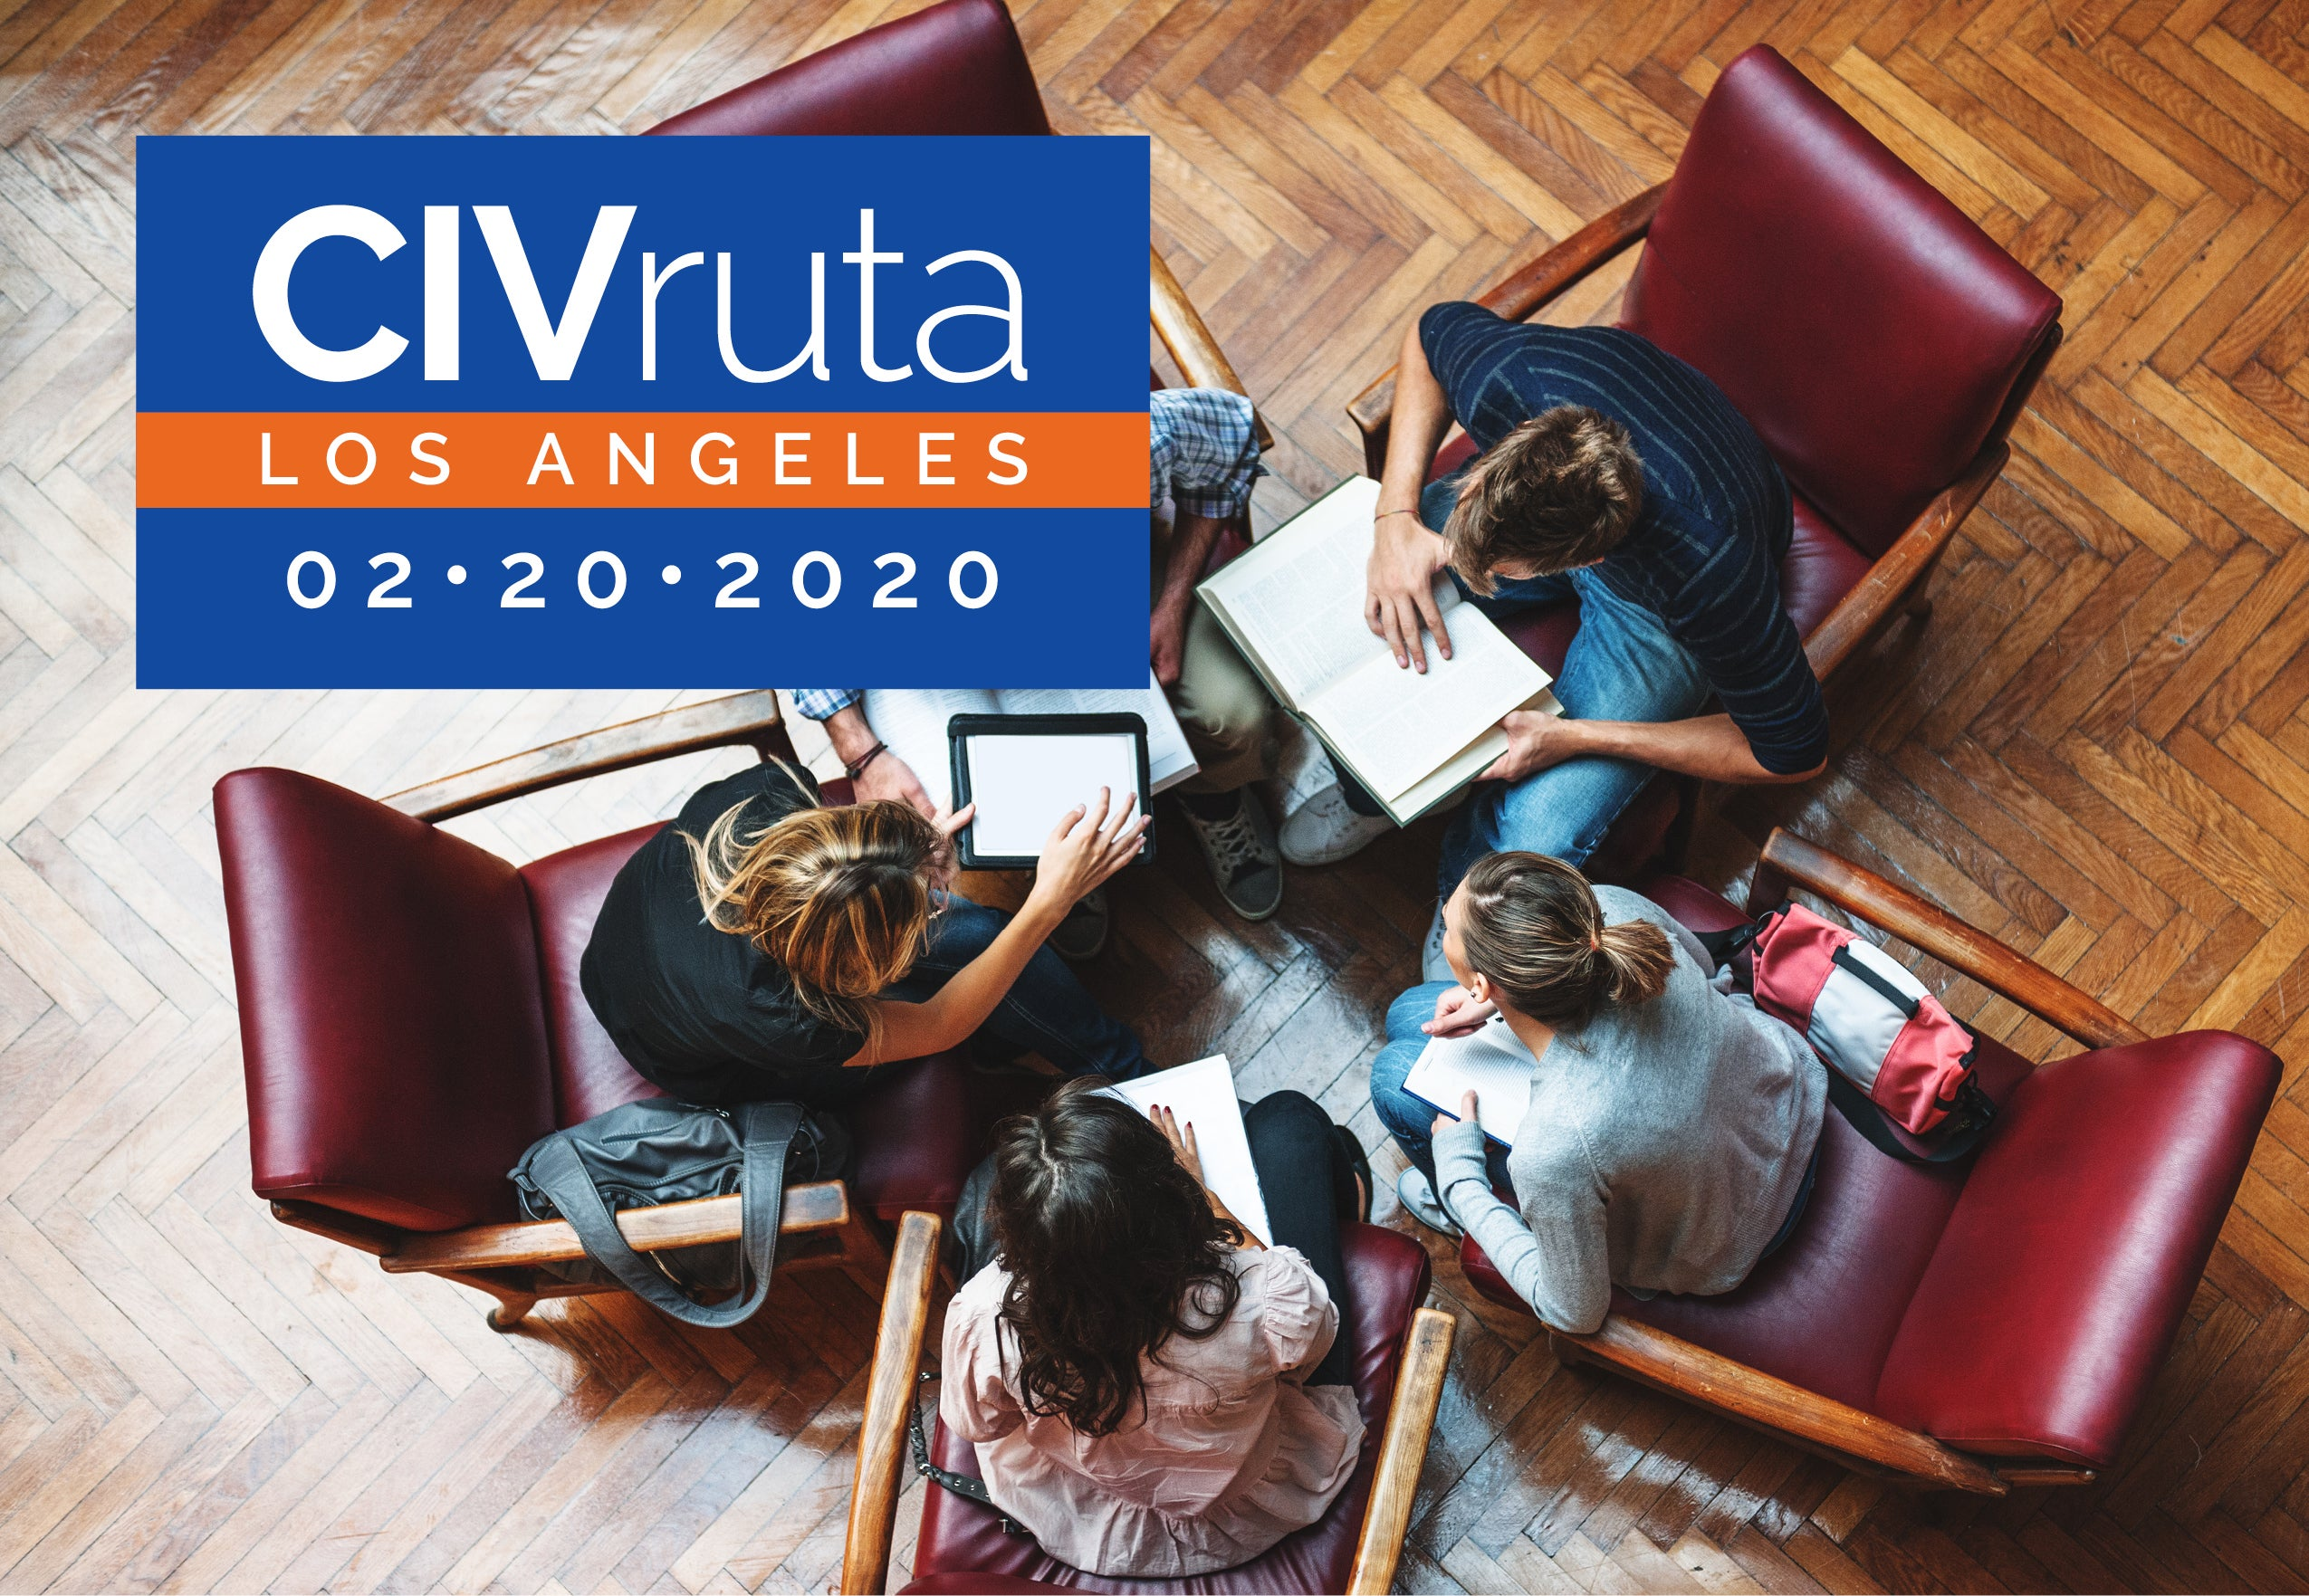 CIVruta header image with people sitting in a circle